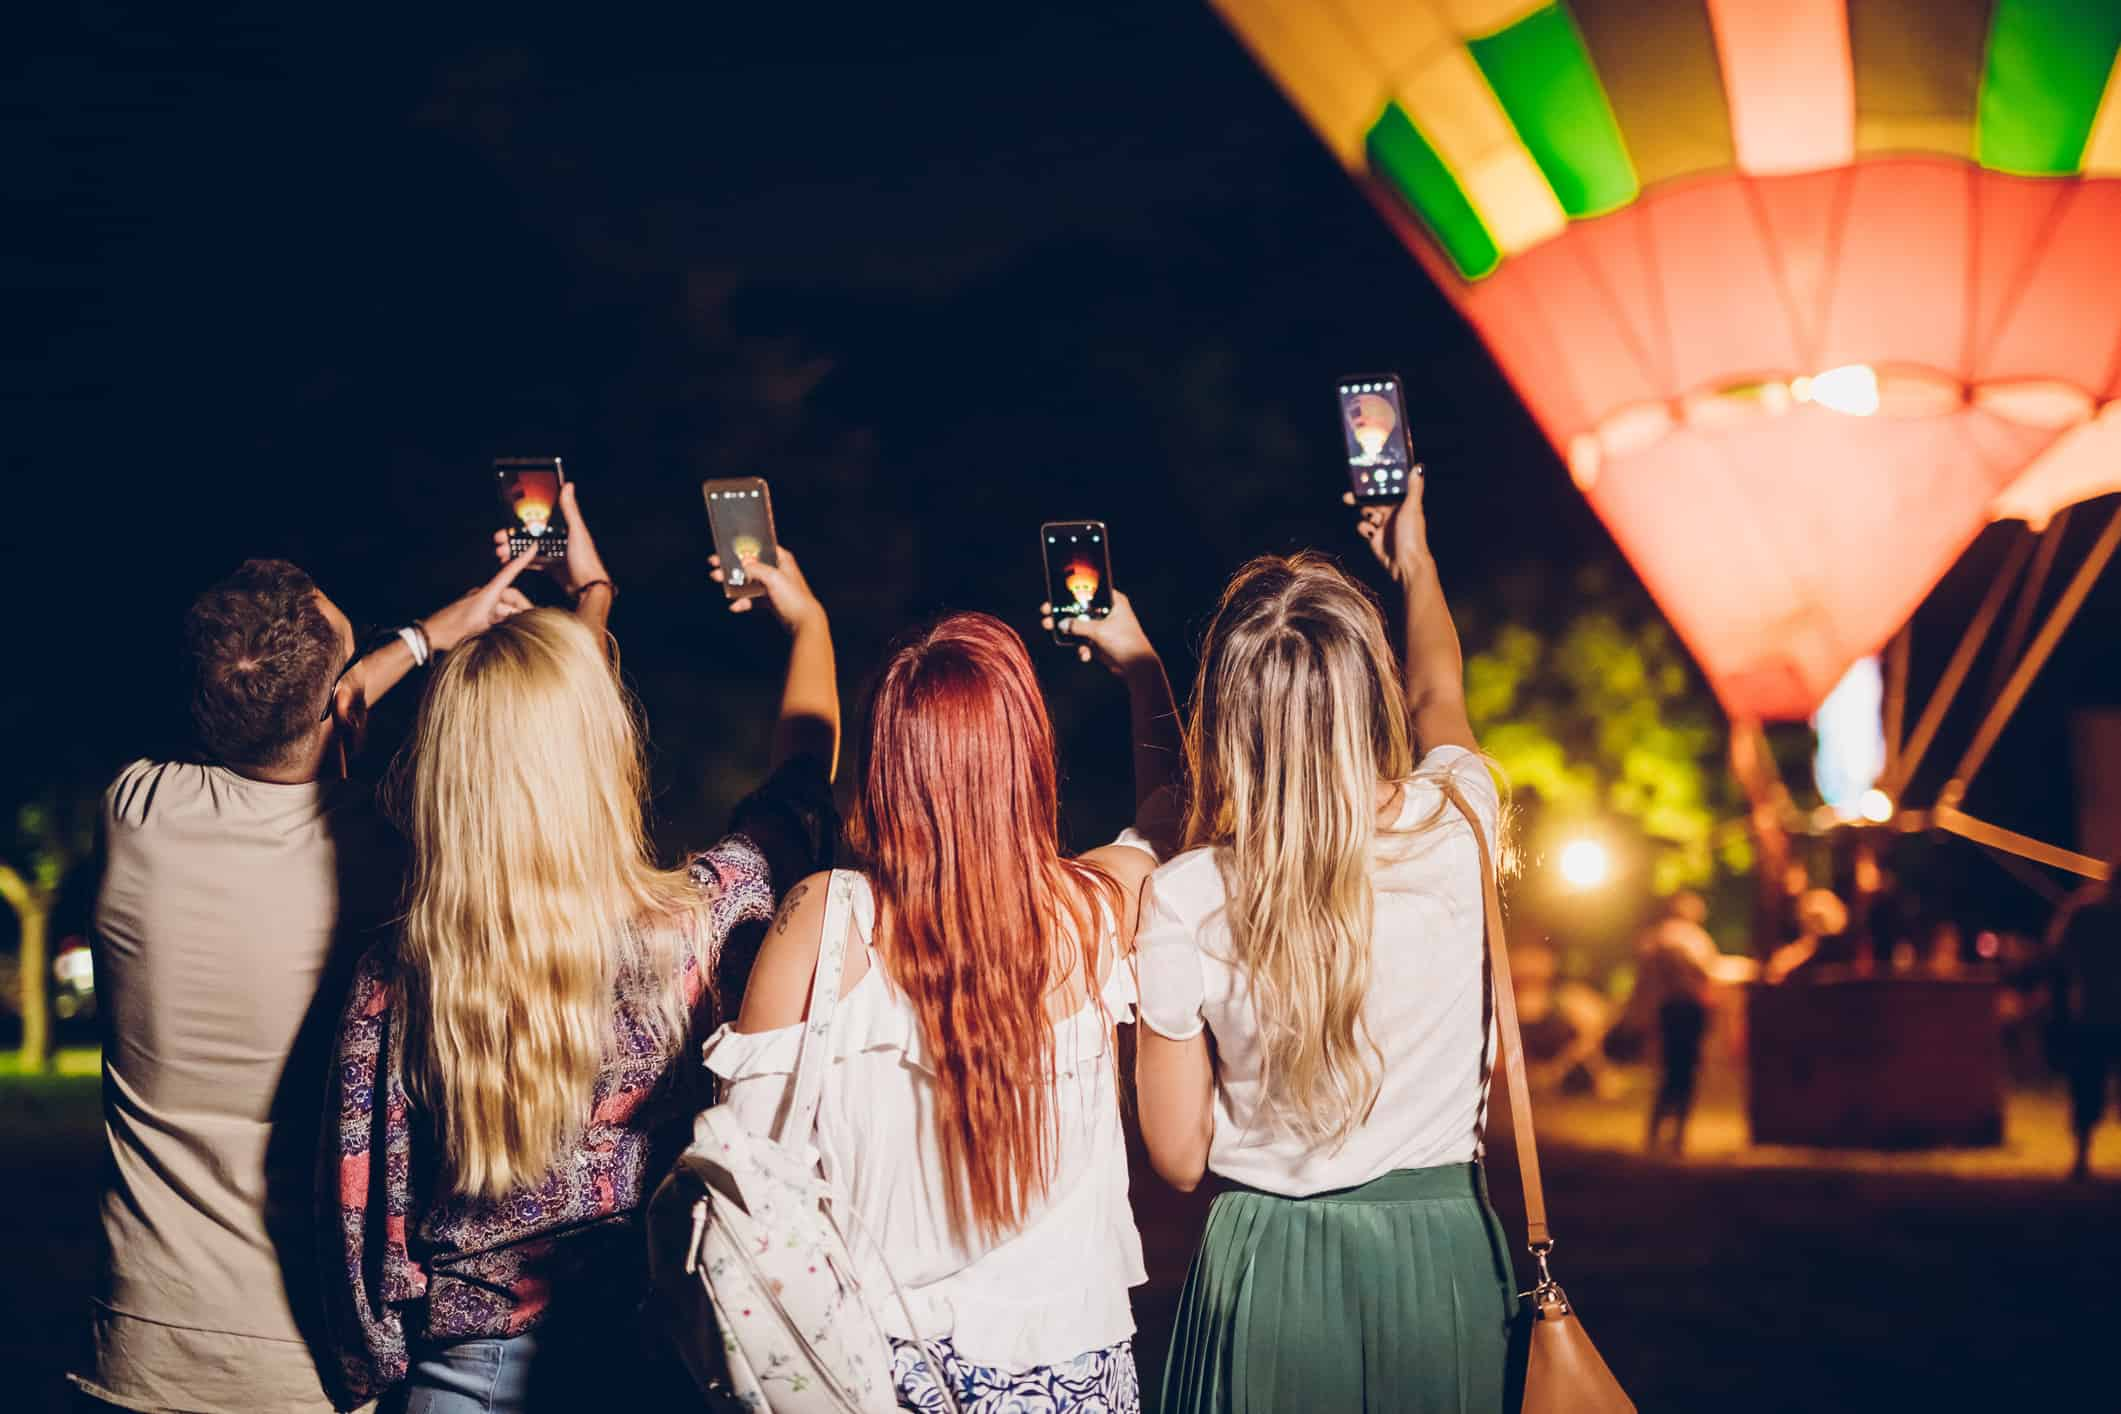 Group of friends taking pictures of a hot air balloon on a music festival.